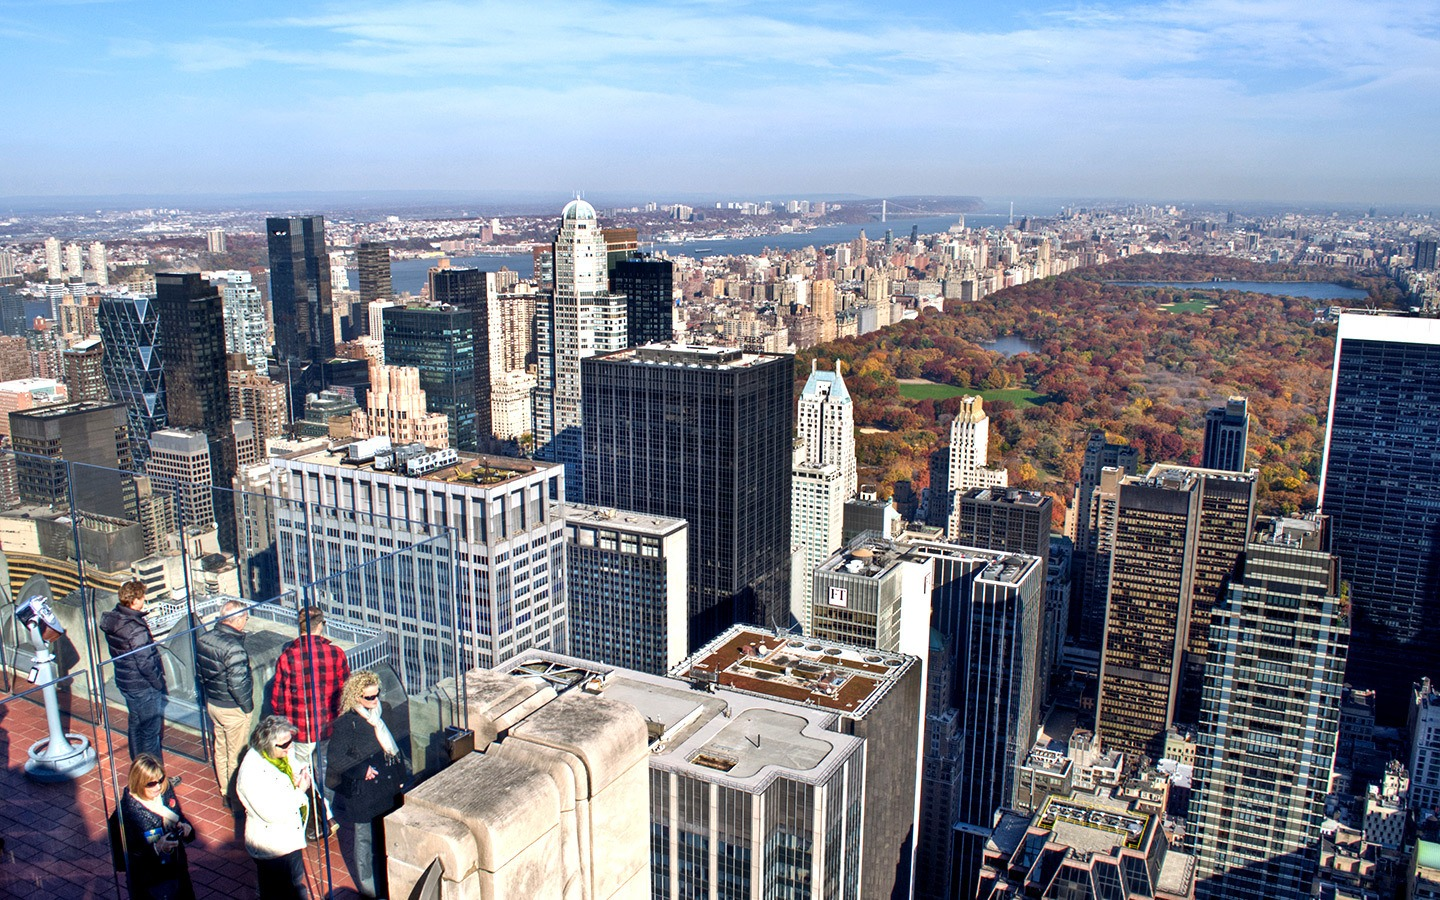 The Top of the Rock viewpoint at New York's Rockefeller Centre